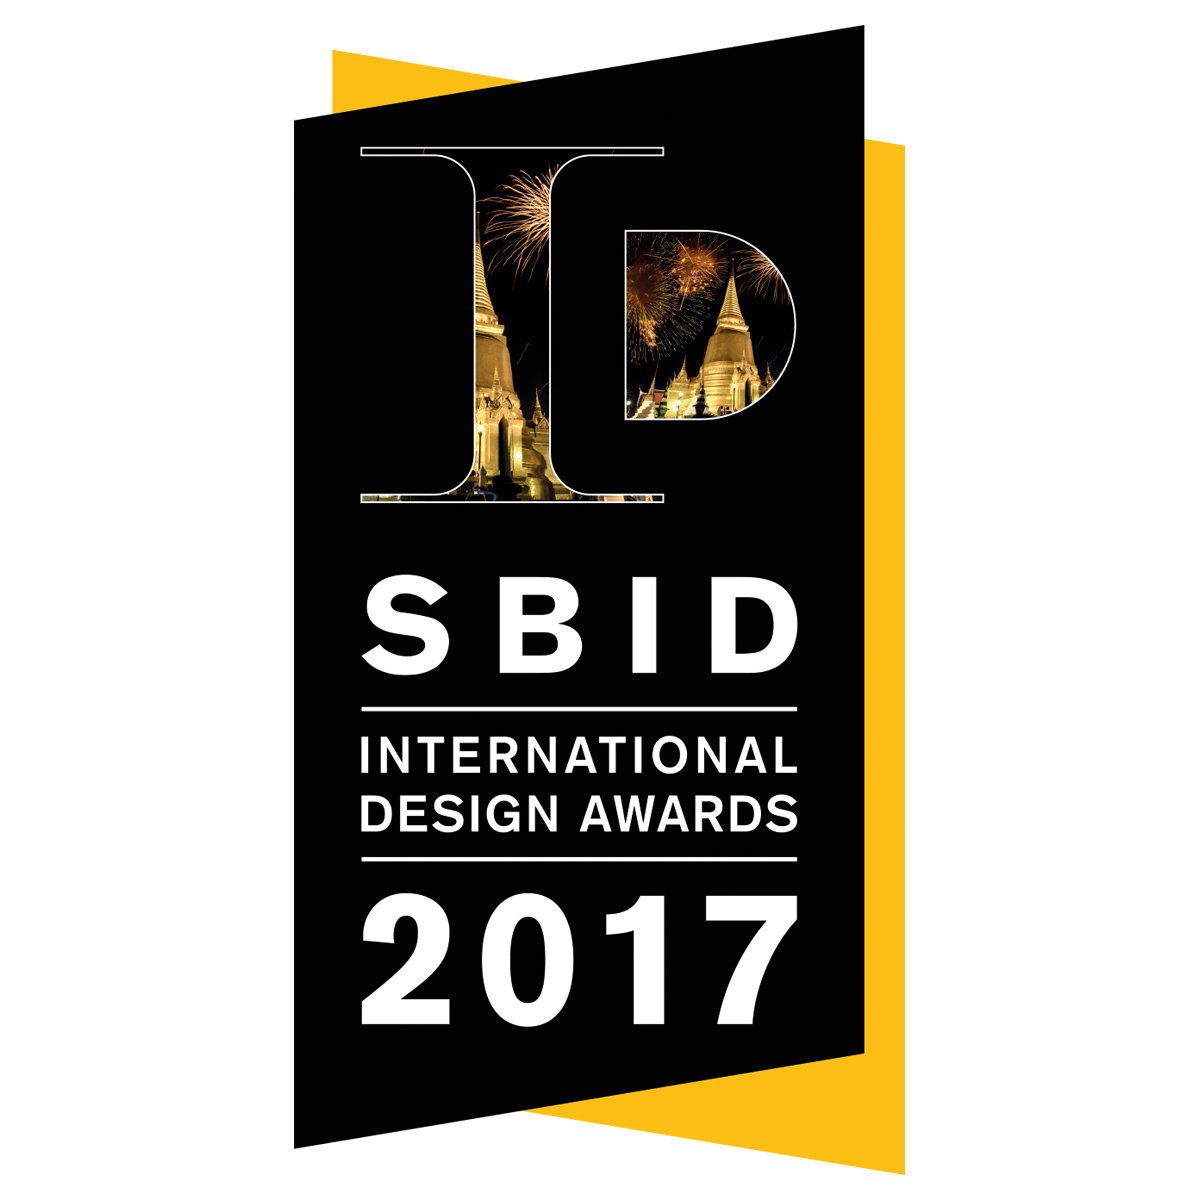 2017 sbid international design awards for International decor 2017